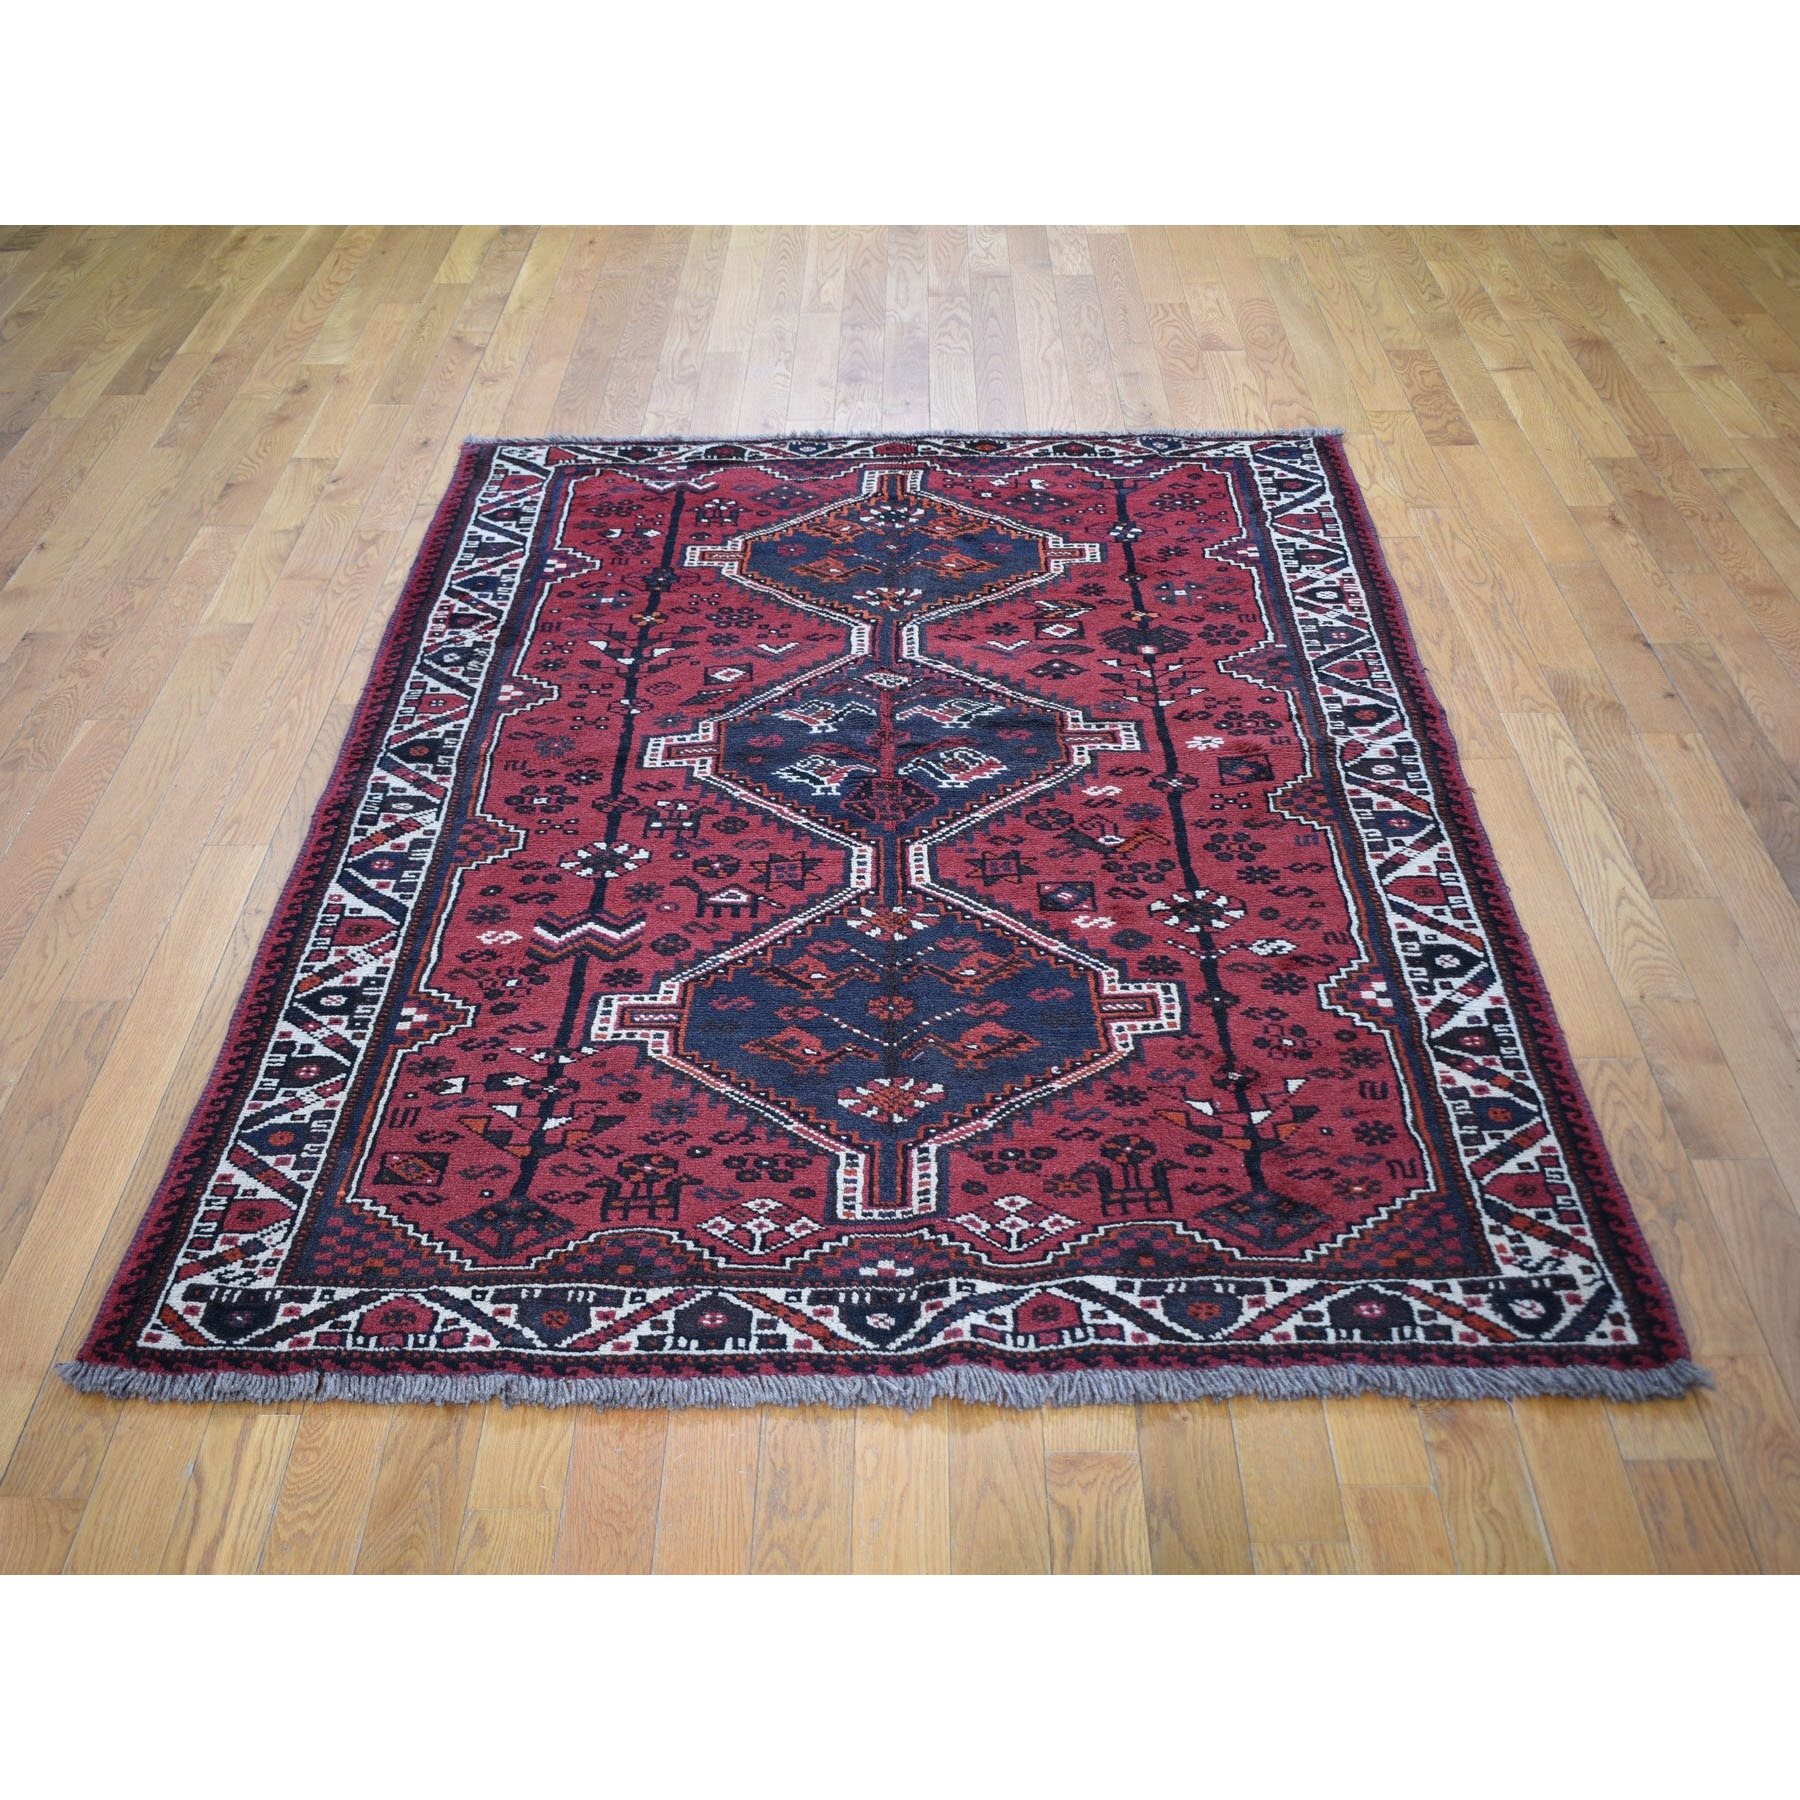 "4'8""x6'10"" Red New Persian Shiraz Full Pile Hand Knotted Oriental Rug"